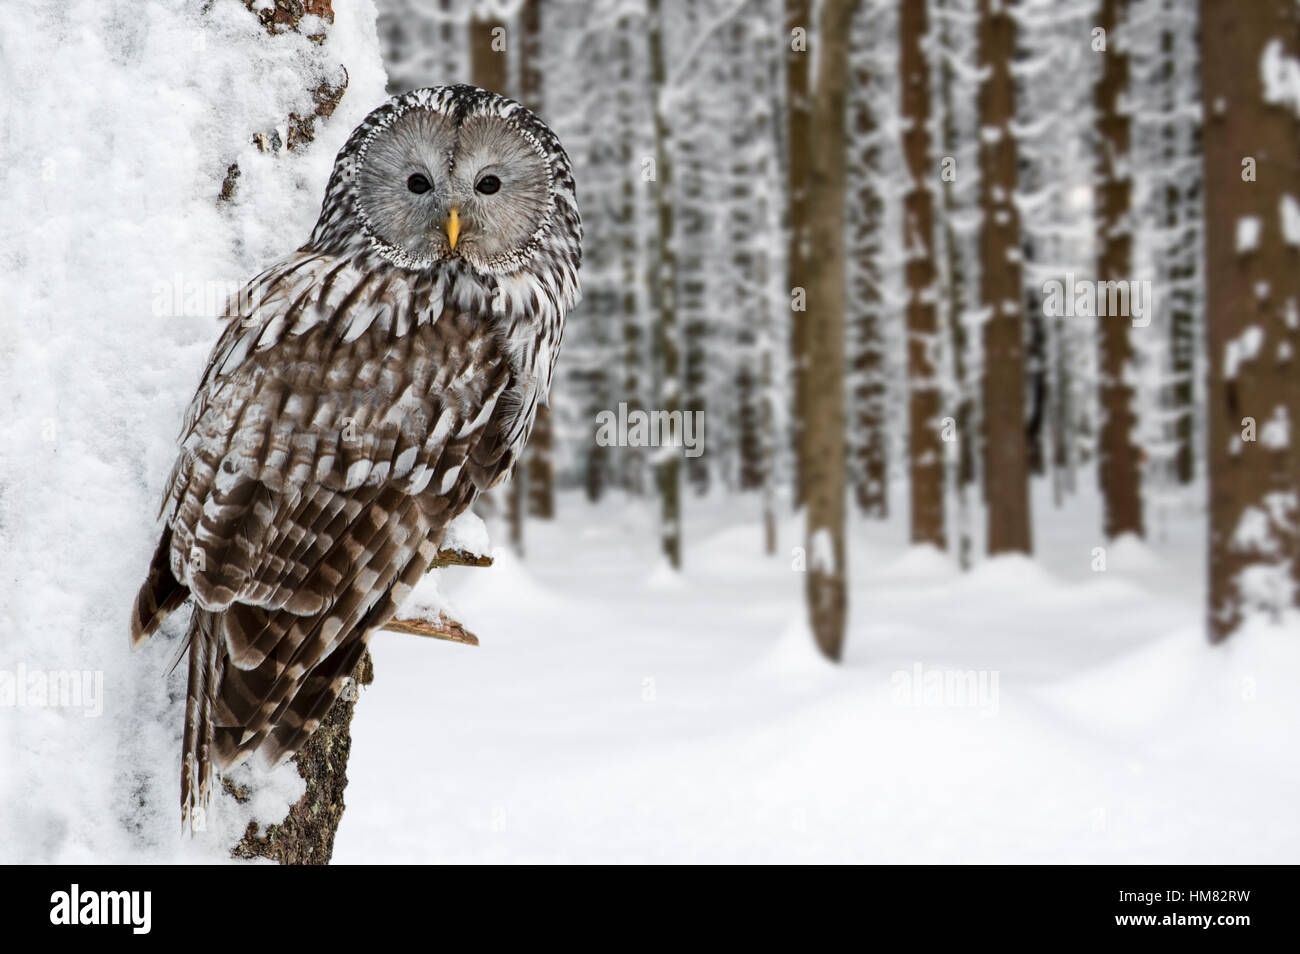 Ural owl (Strix uralensis) perched in tree in forest in the snow in winter - Stock Image